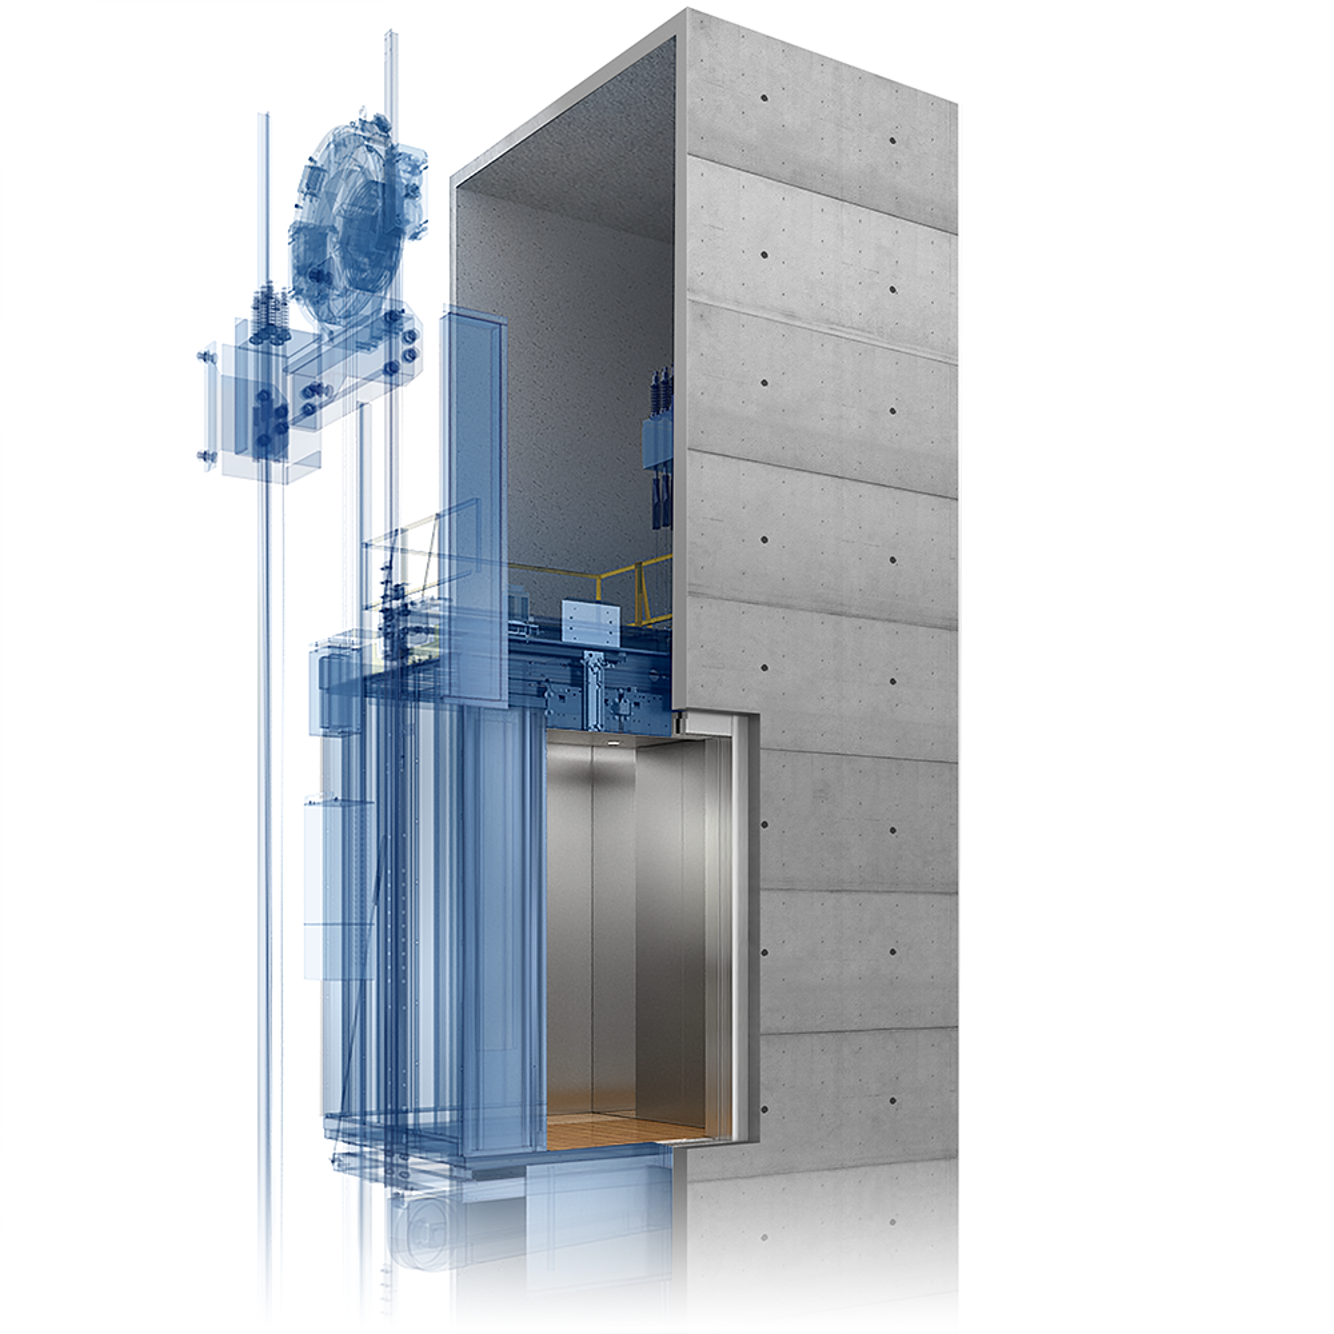 Evolution1 Elevator By Thyssenkrupp